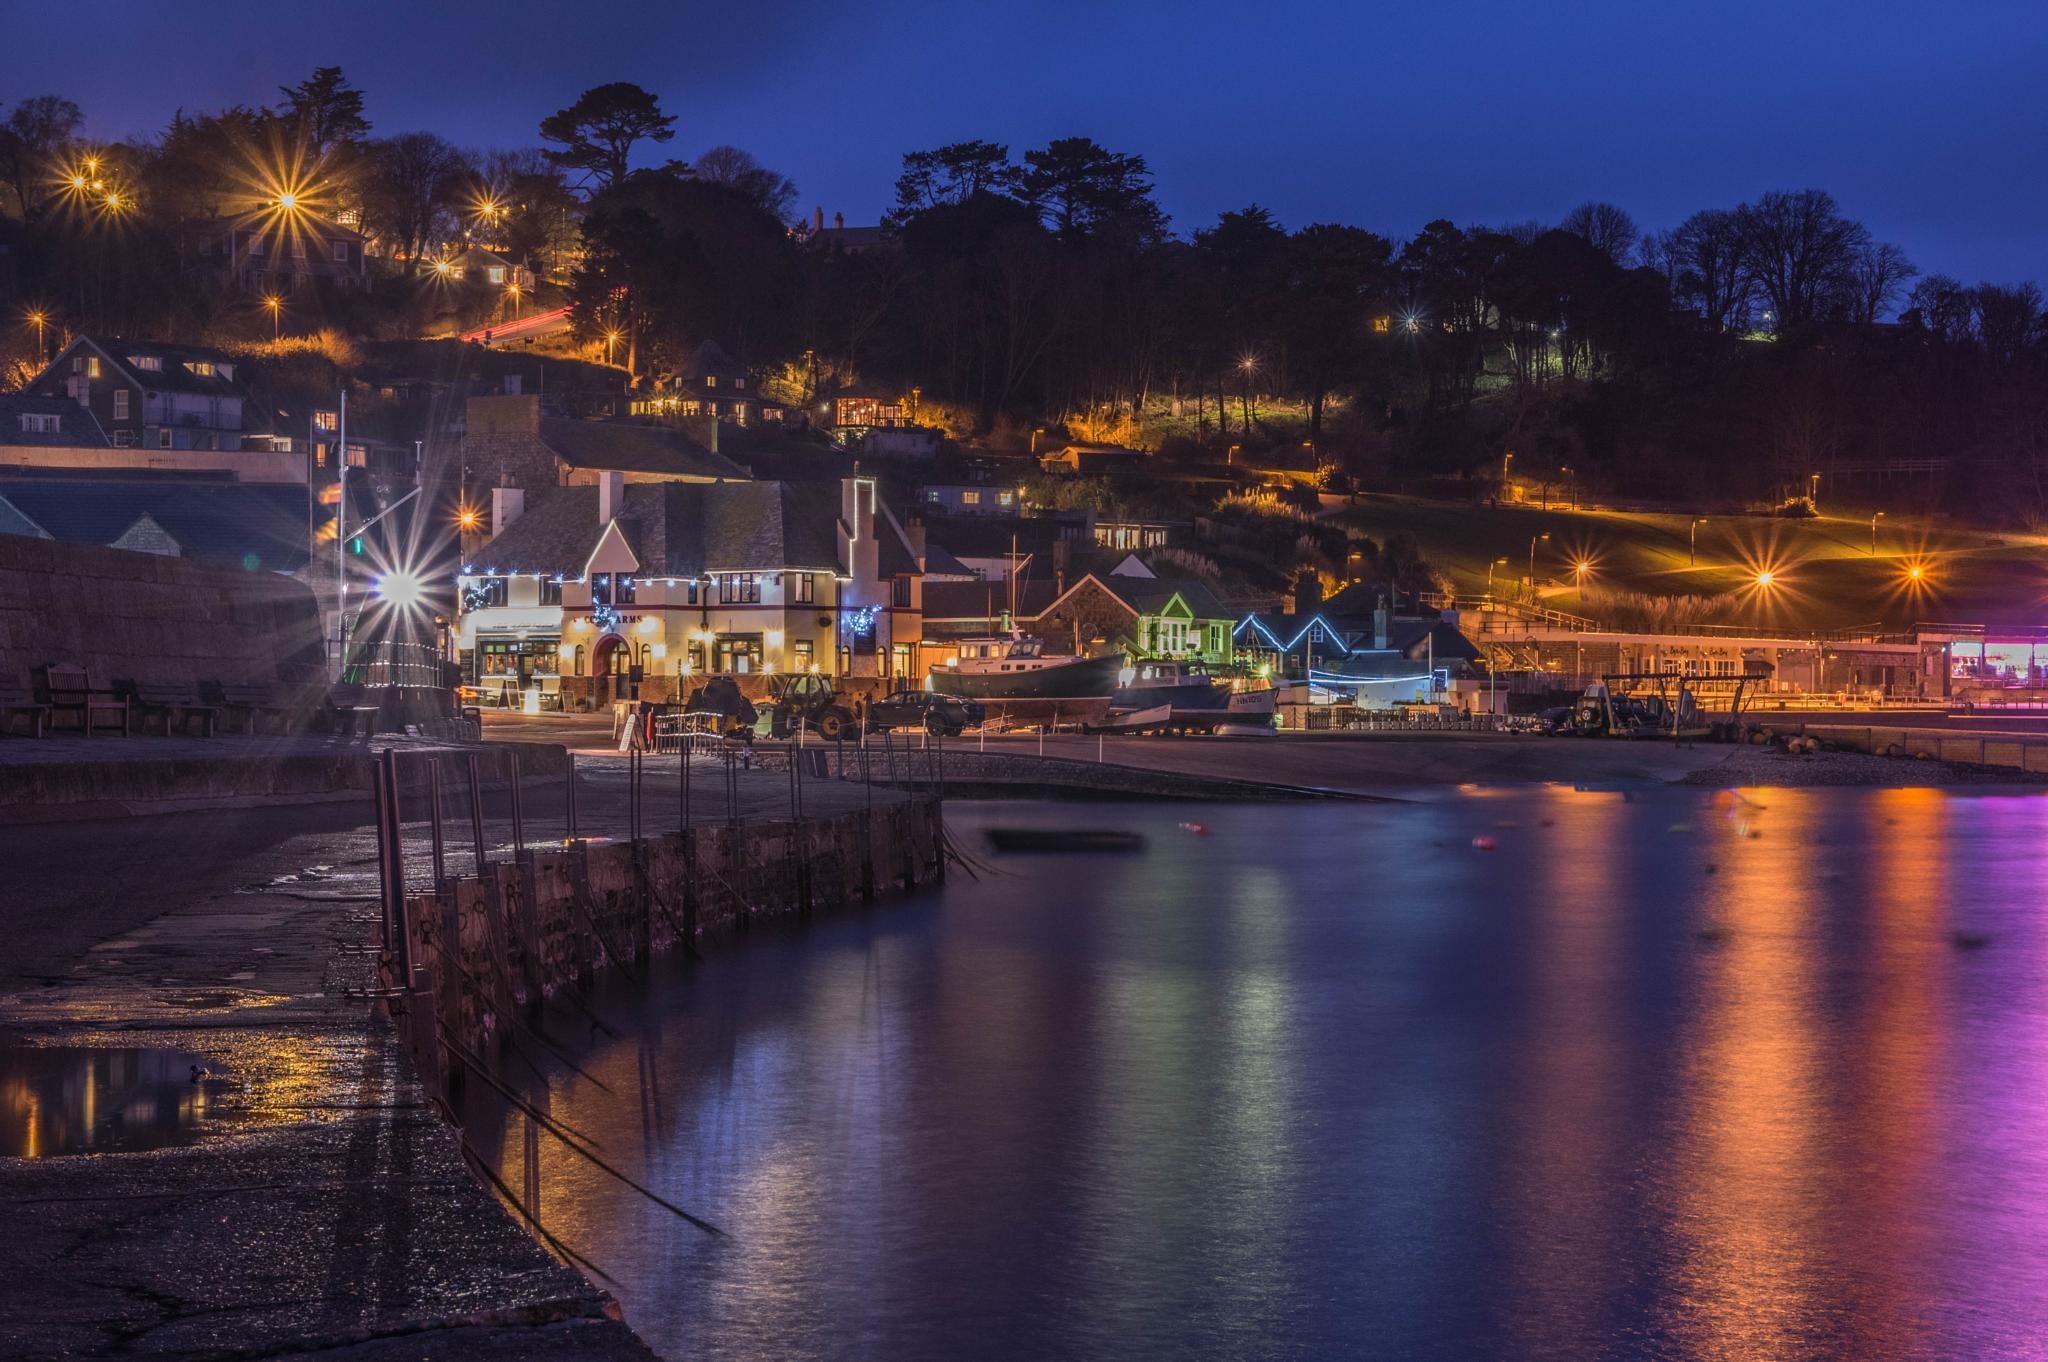 Night at Lyme Regis by Paul Newman